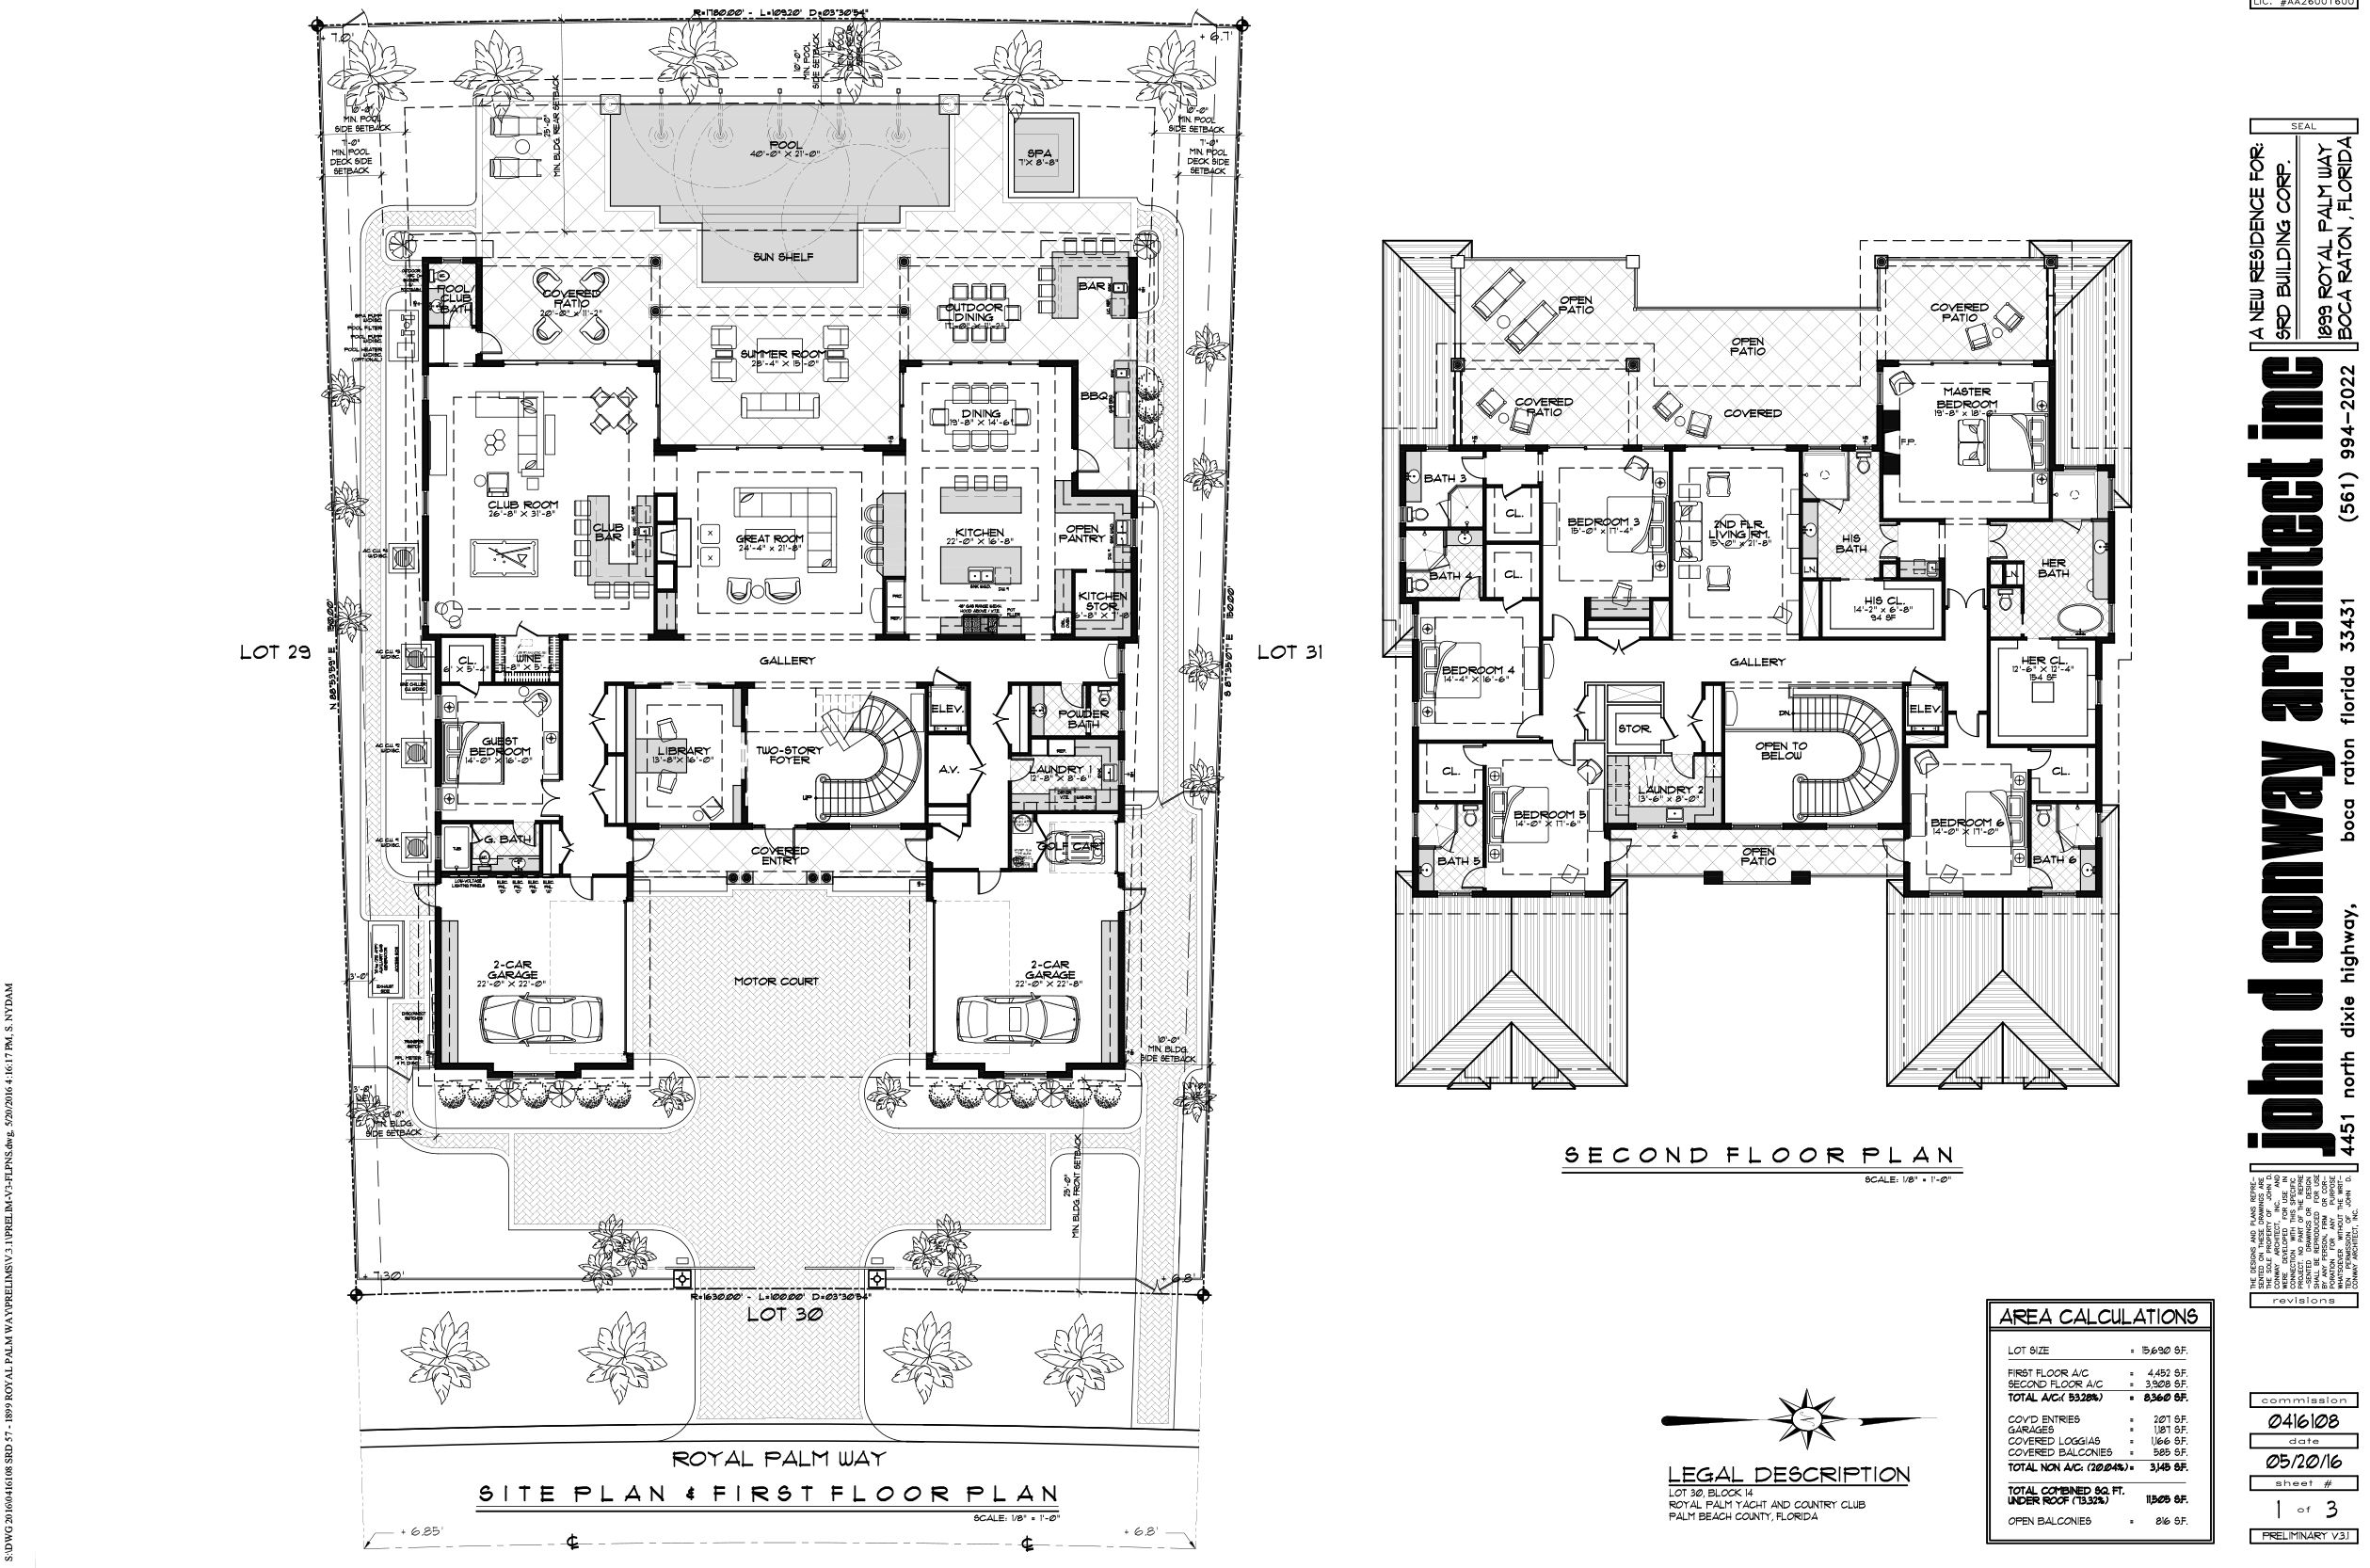 760 House Plans Ideas In 2021 House Plans Floor Plans How To Plan